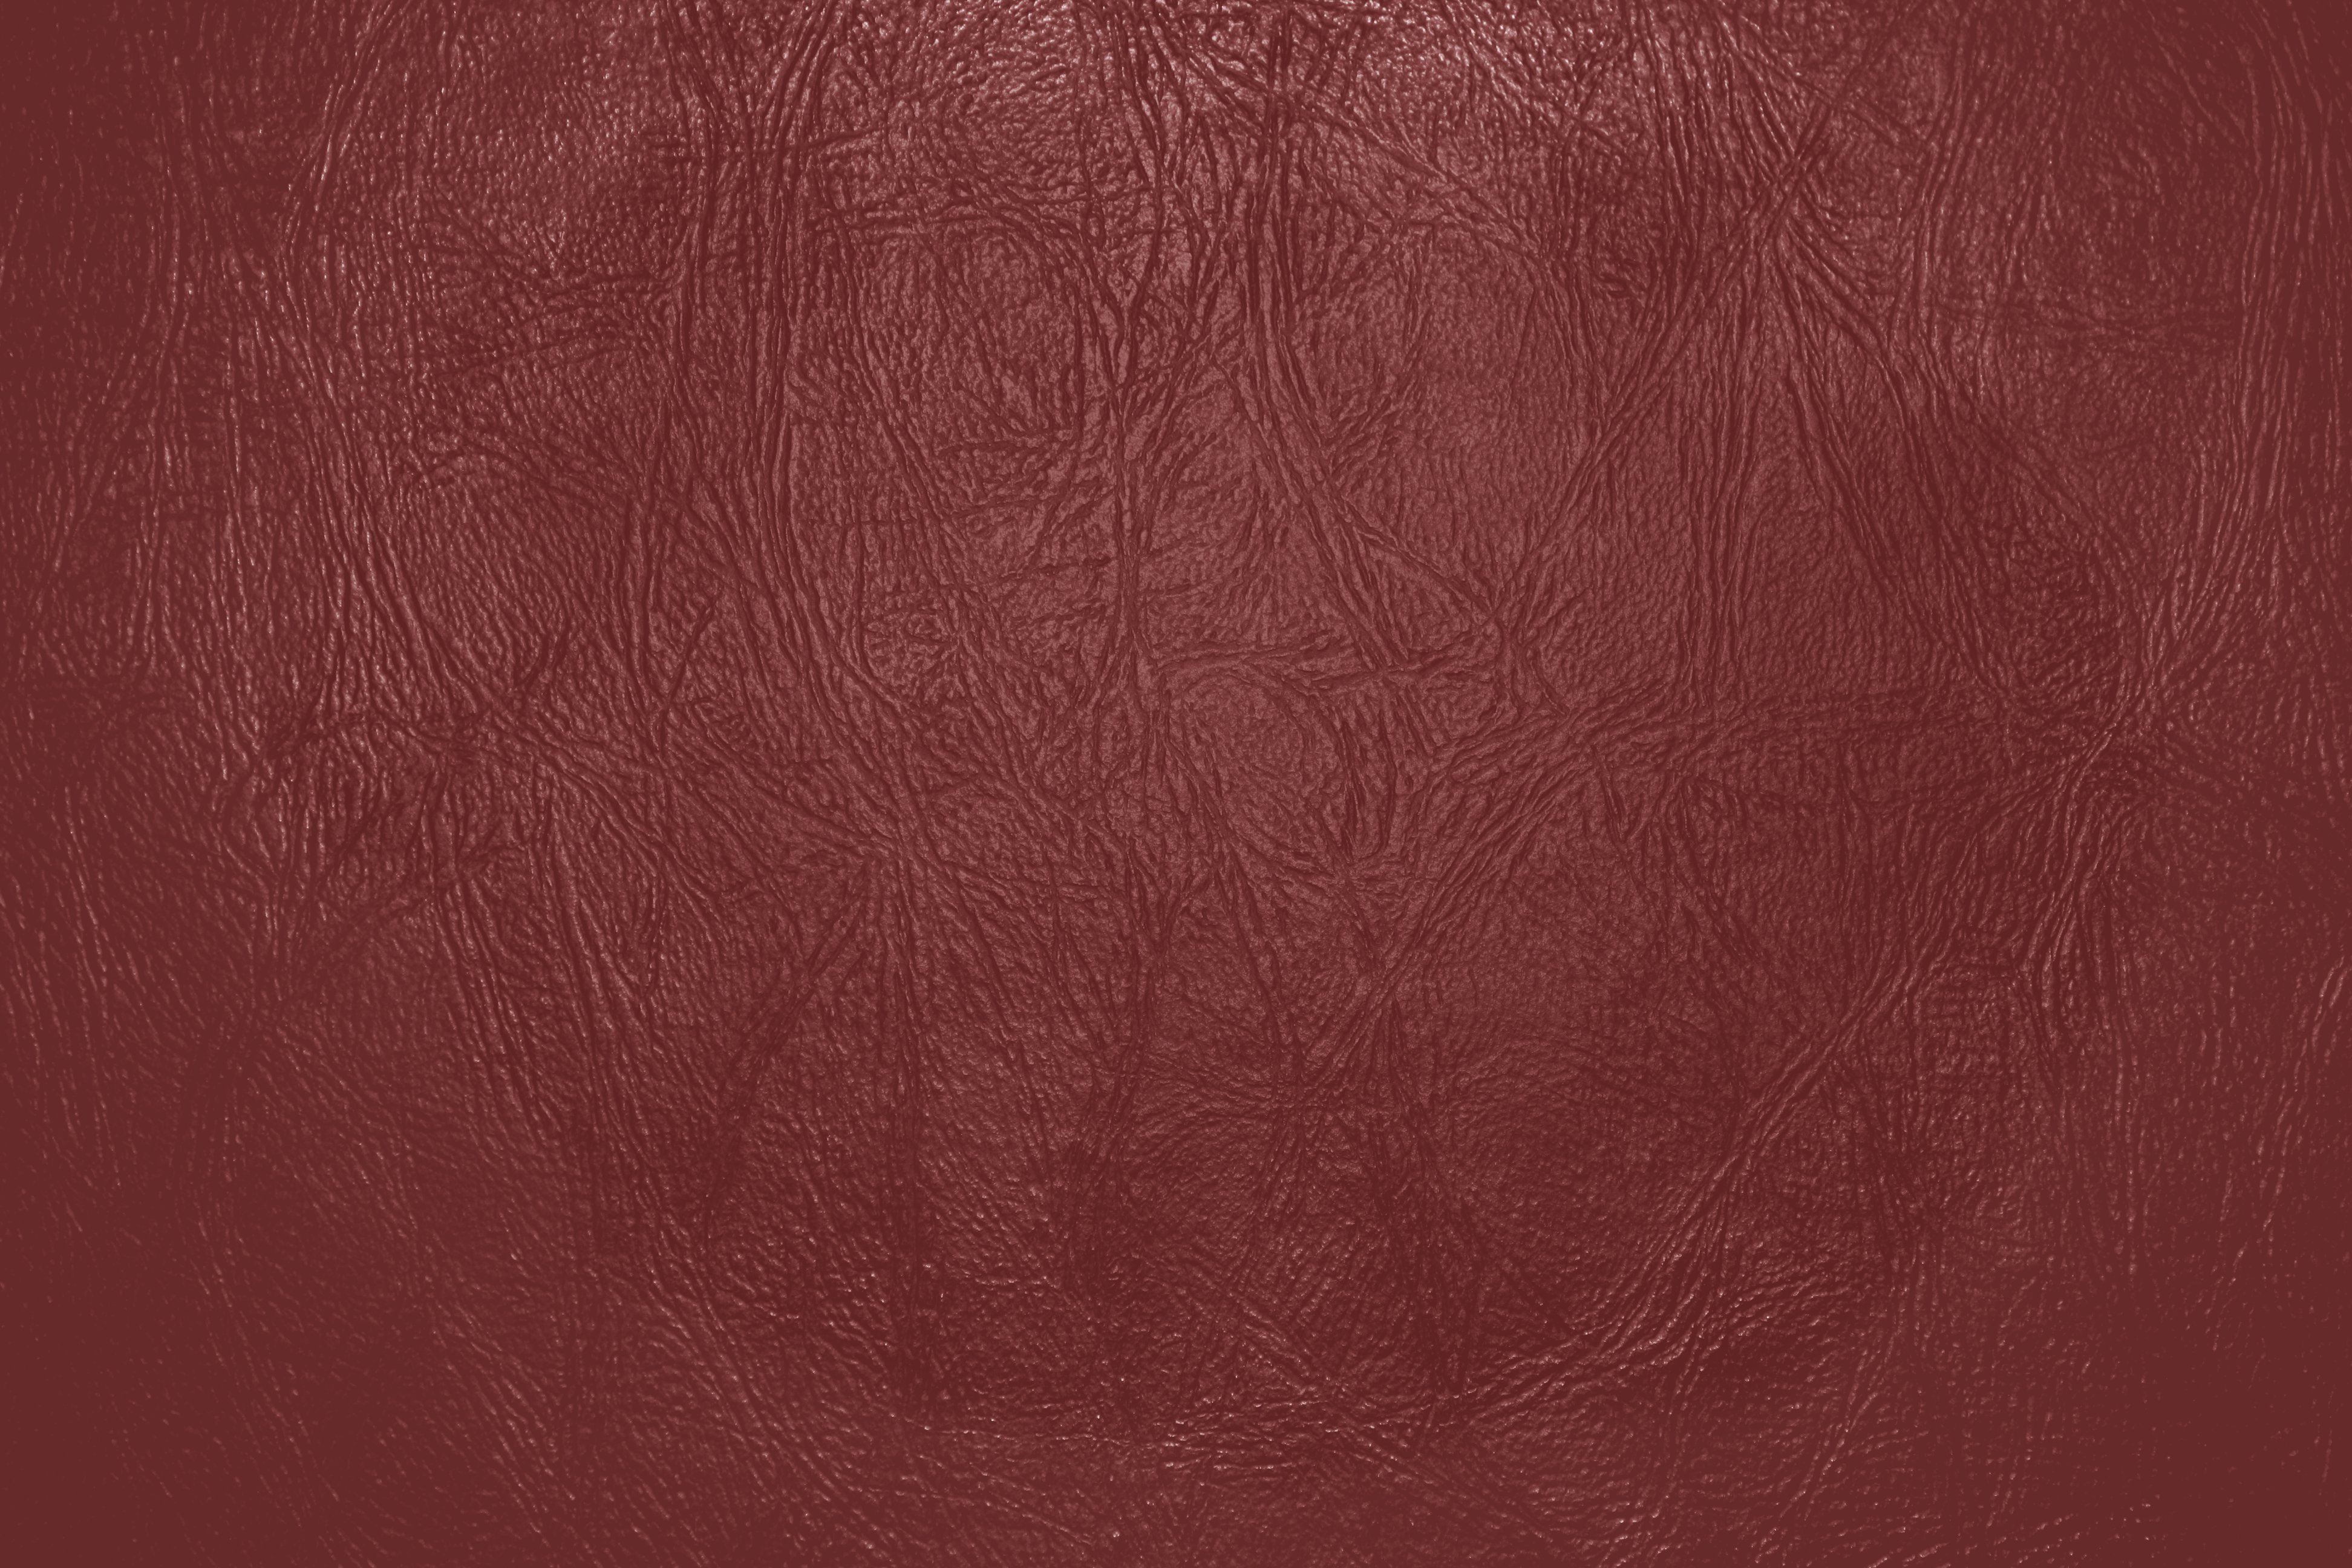 Maroon leather close up texture free high resolution photo